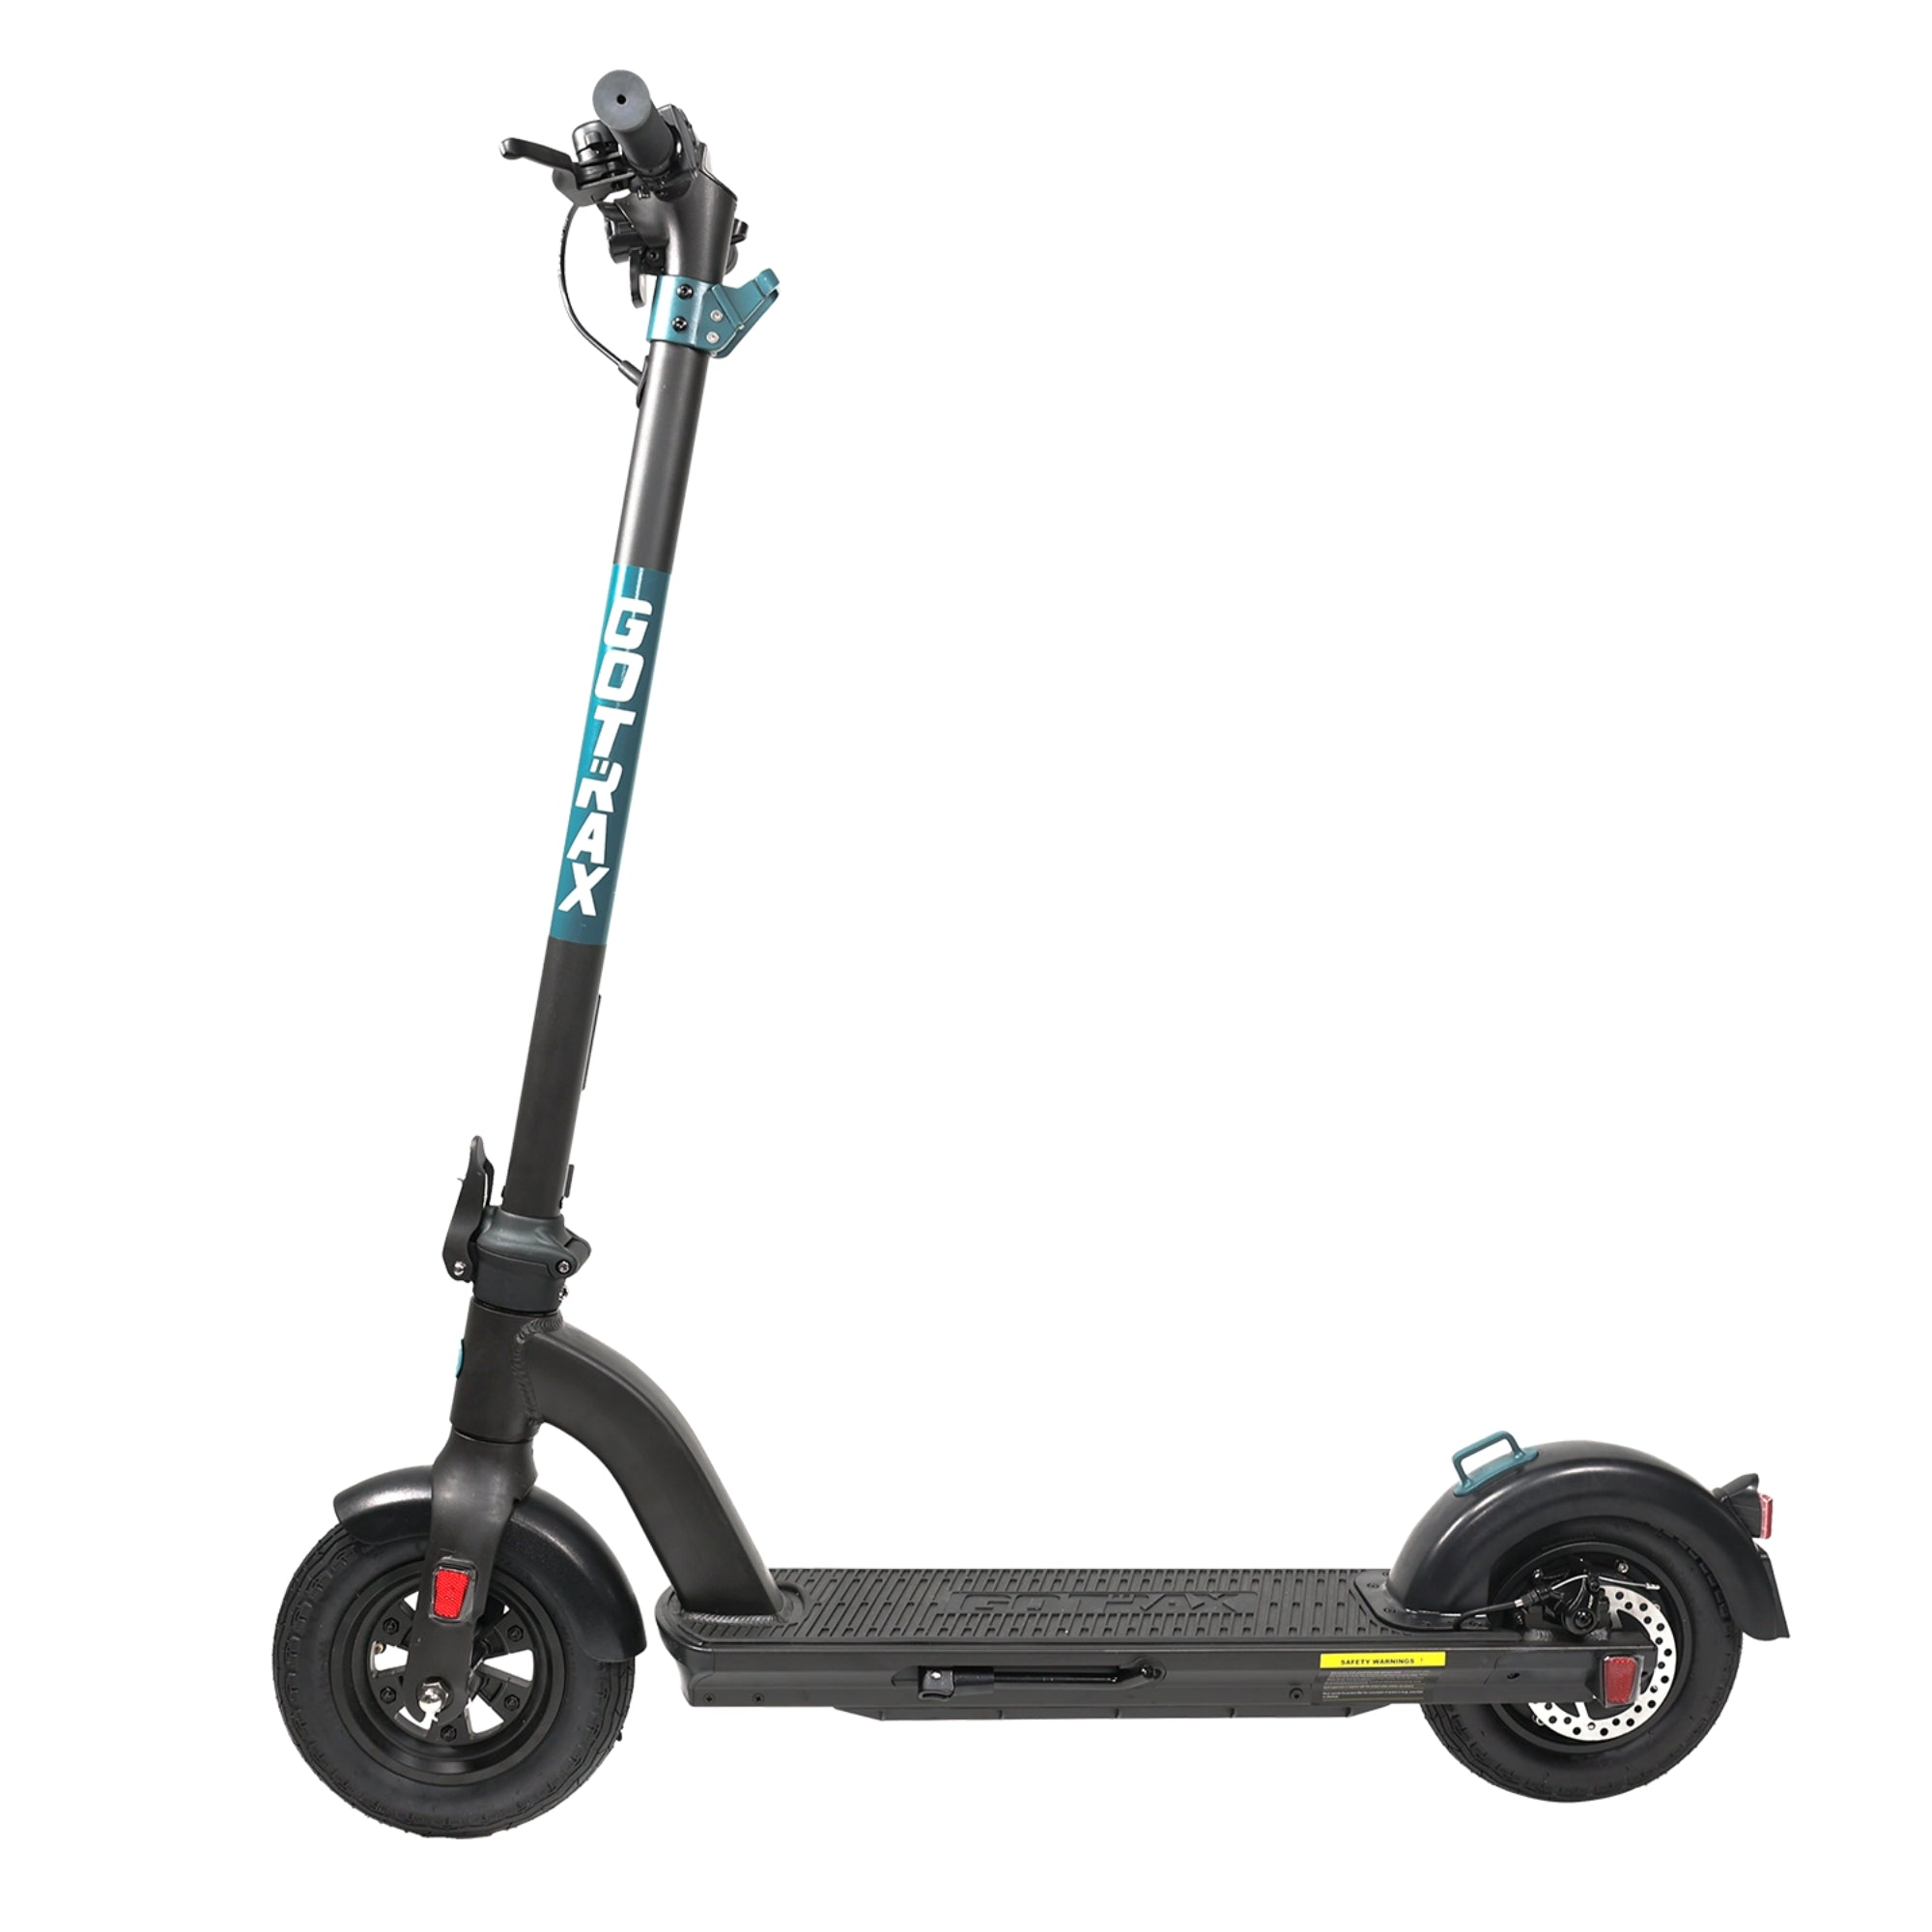 Black GMAX Ultra electric scooter main image 3